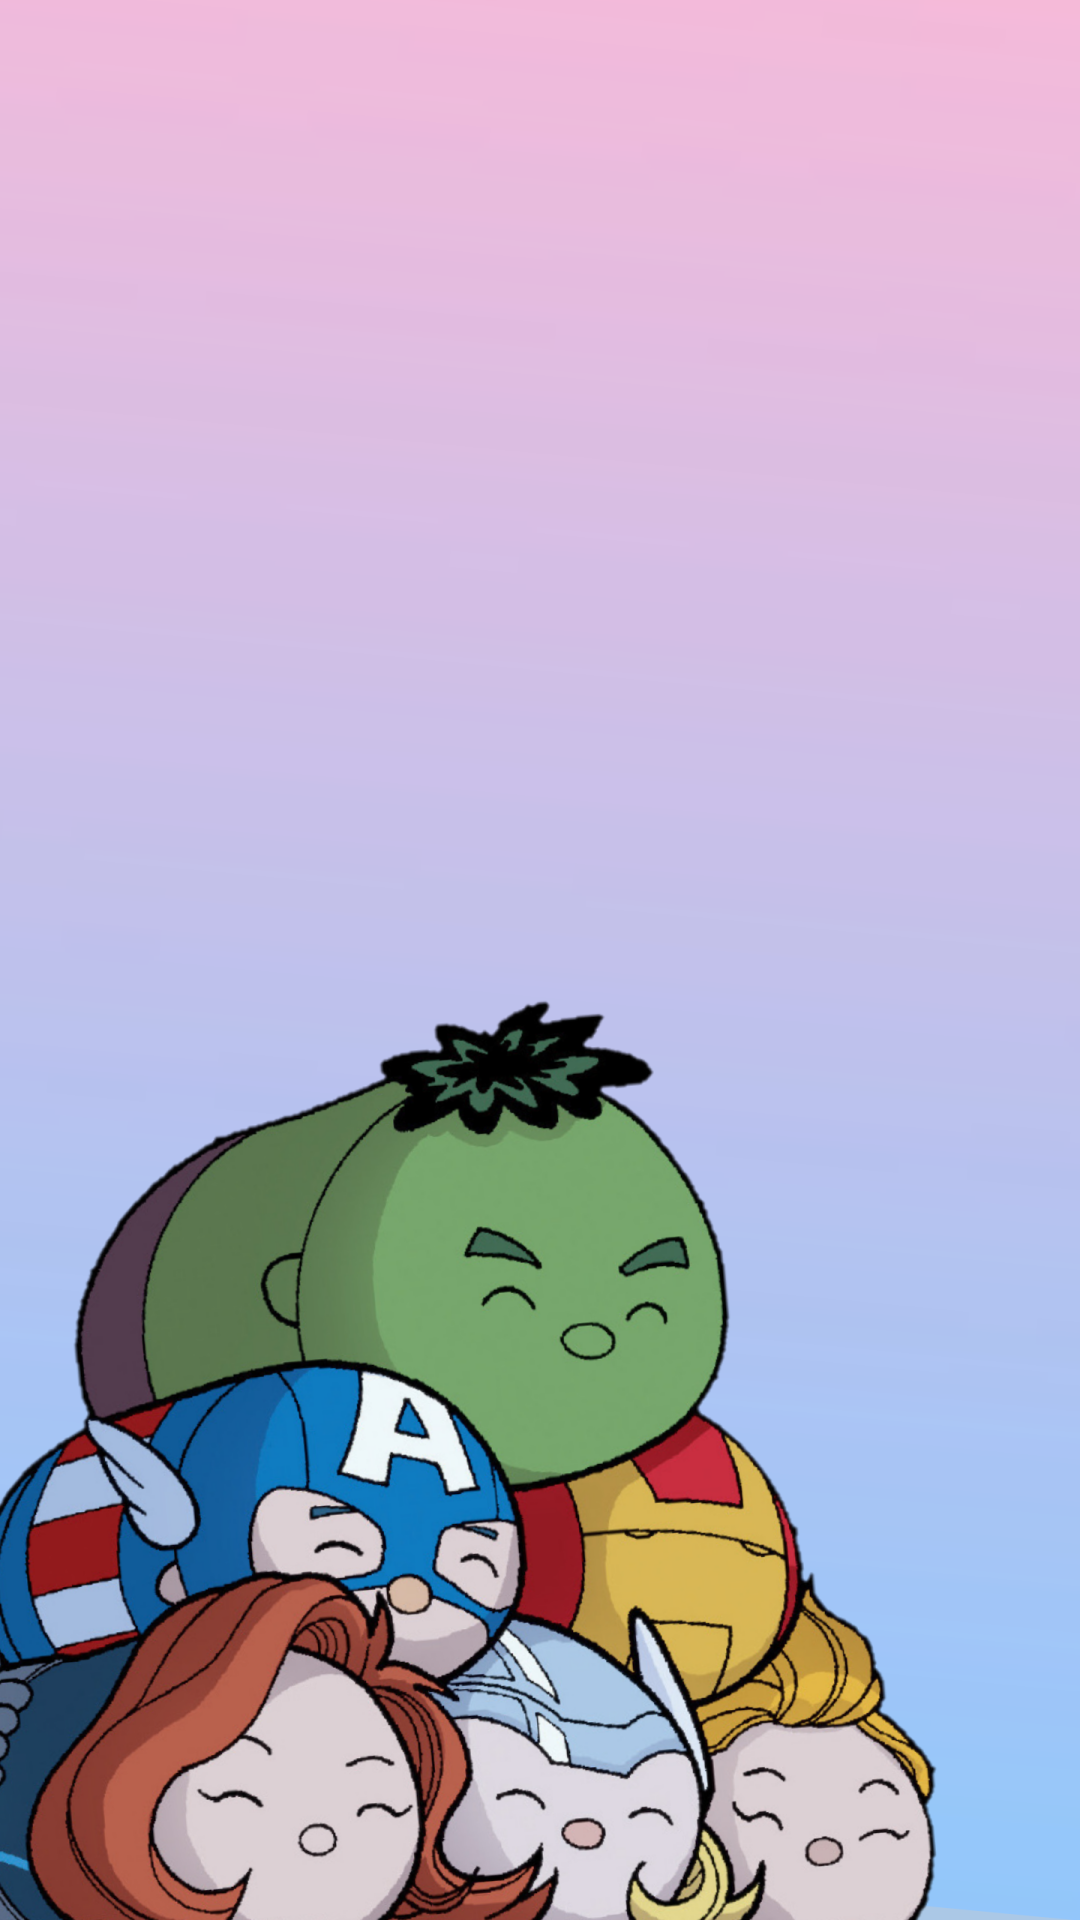 Marvel Wallpaper for iPhone from rogers-and-stark.tumblr.com